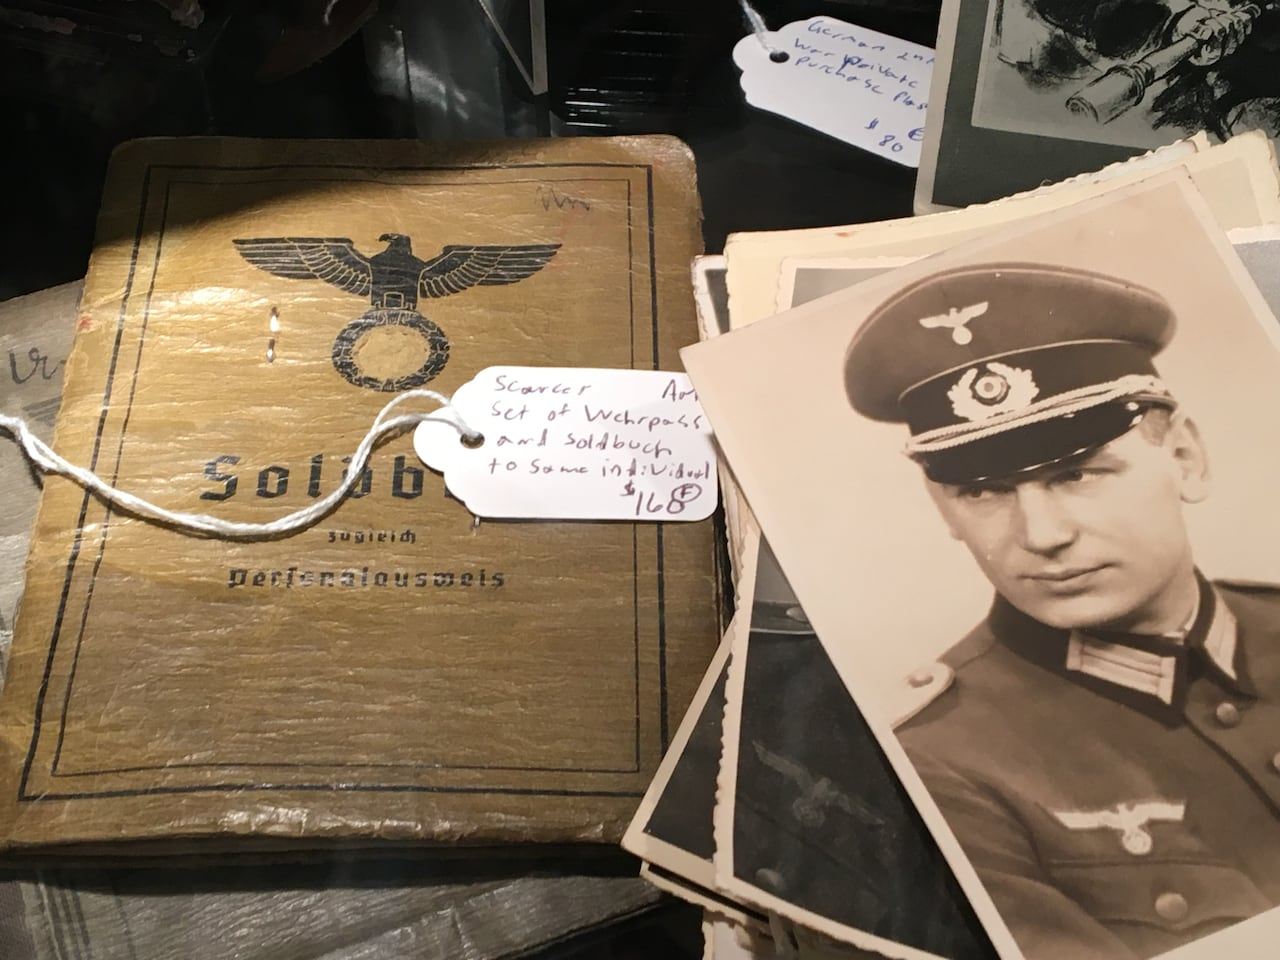 Nazi Symbols For Sale At Antique Store Sparks Debate Over Racist